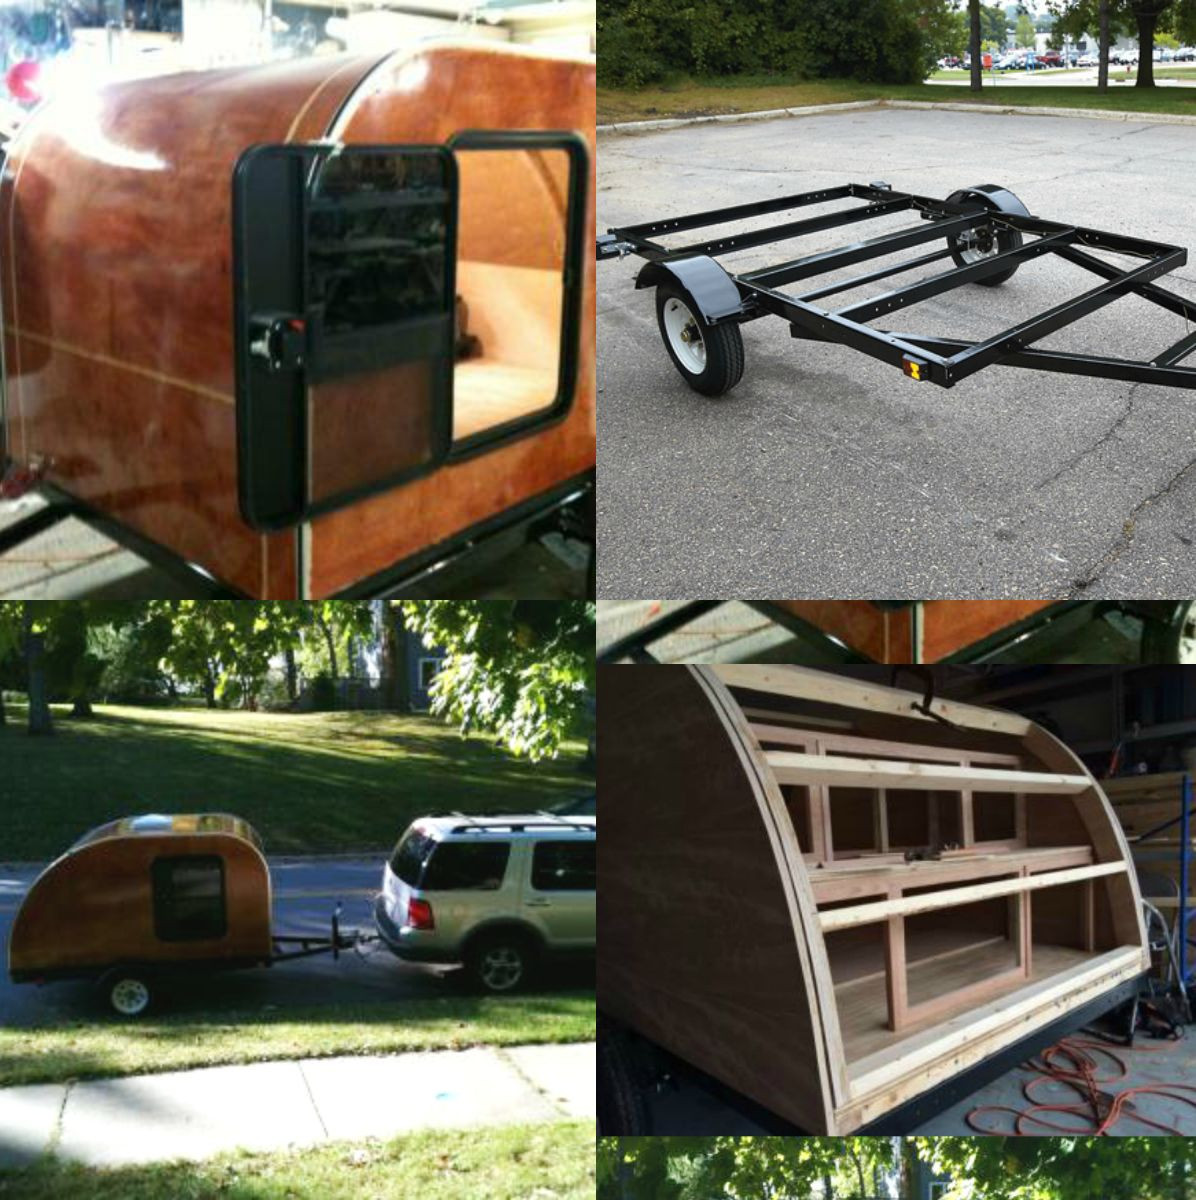 Best ideas about DIY Camper Trailer Kits . Save or Pin Ironton 5ft x 8ft Steel Utility Trailer Kit 1715 Lb Now.